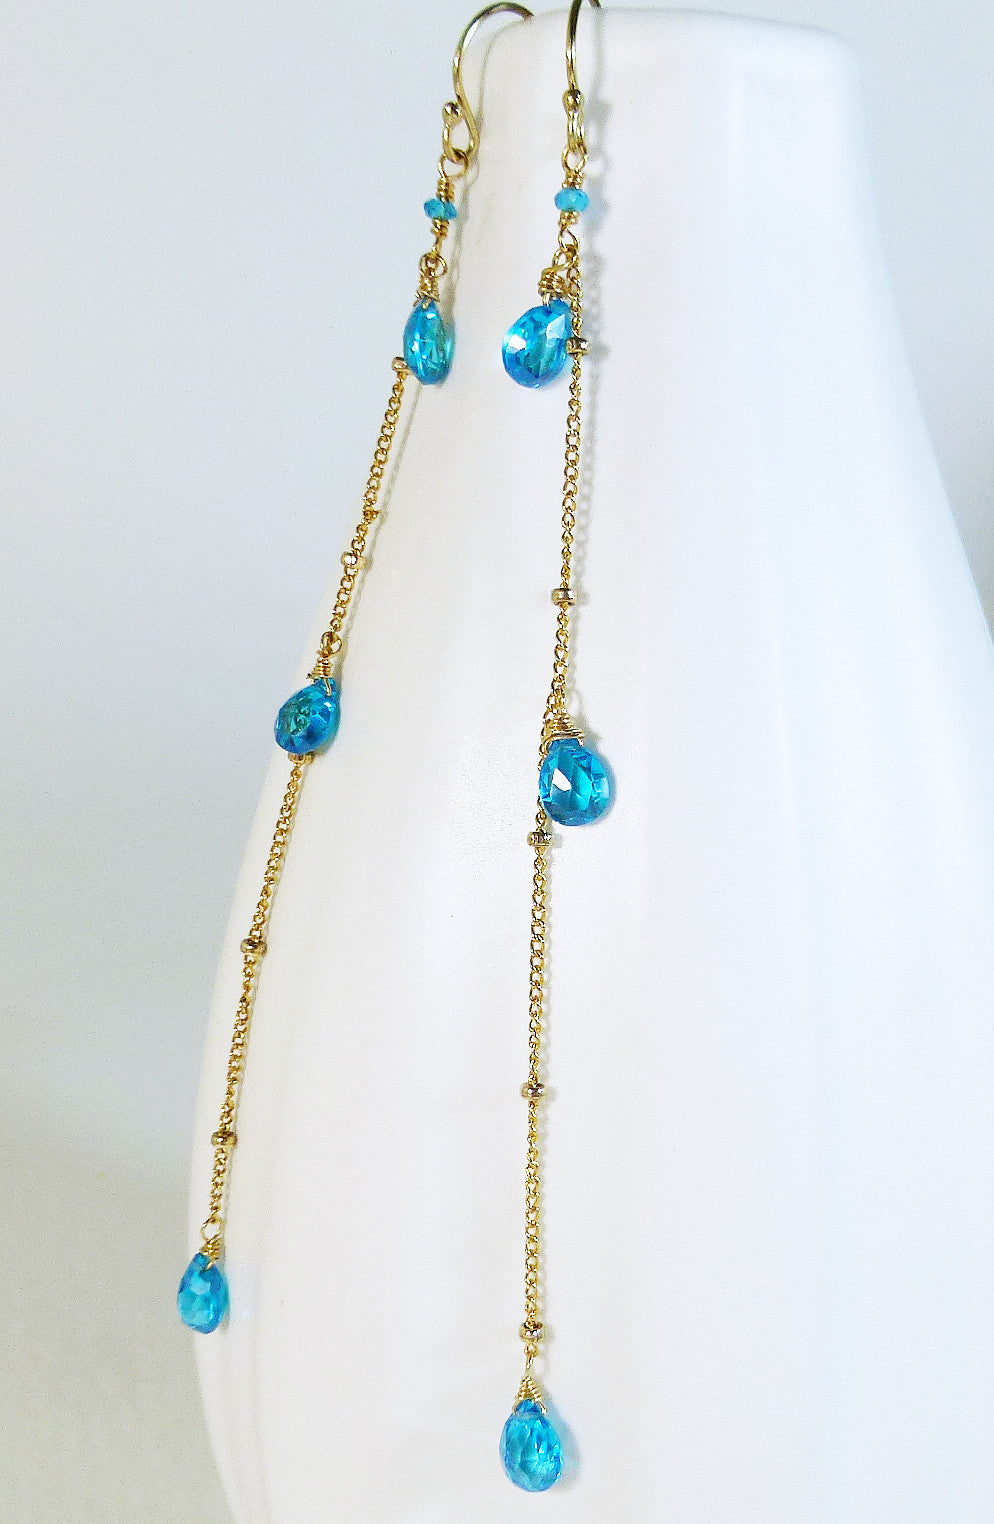 Neon blue Zircon long linear drop gold earrings